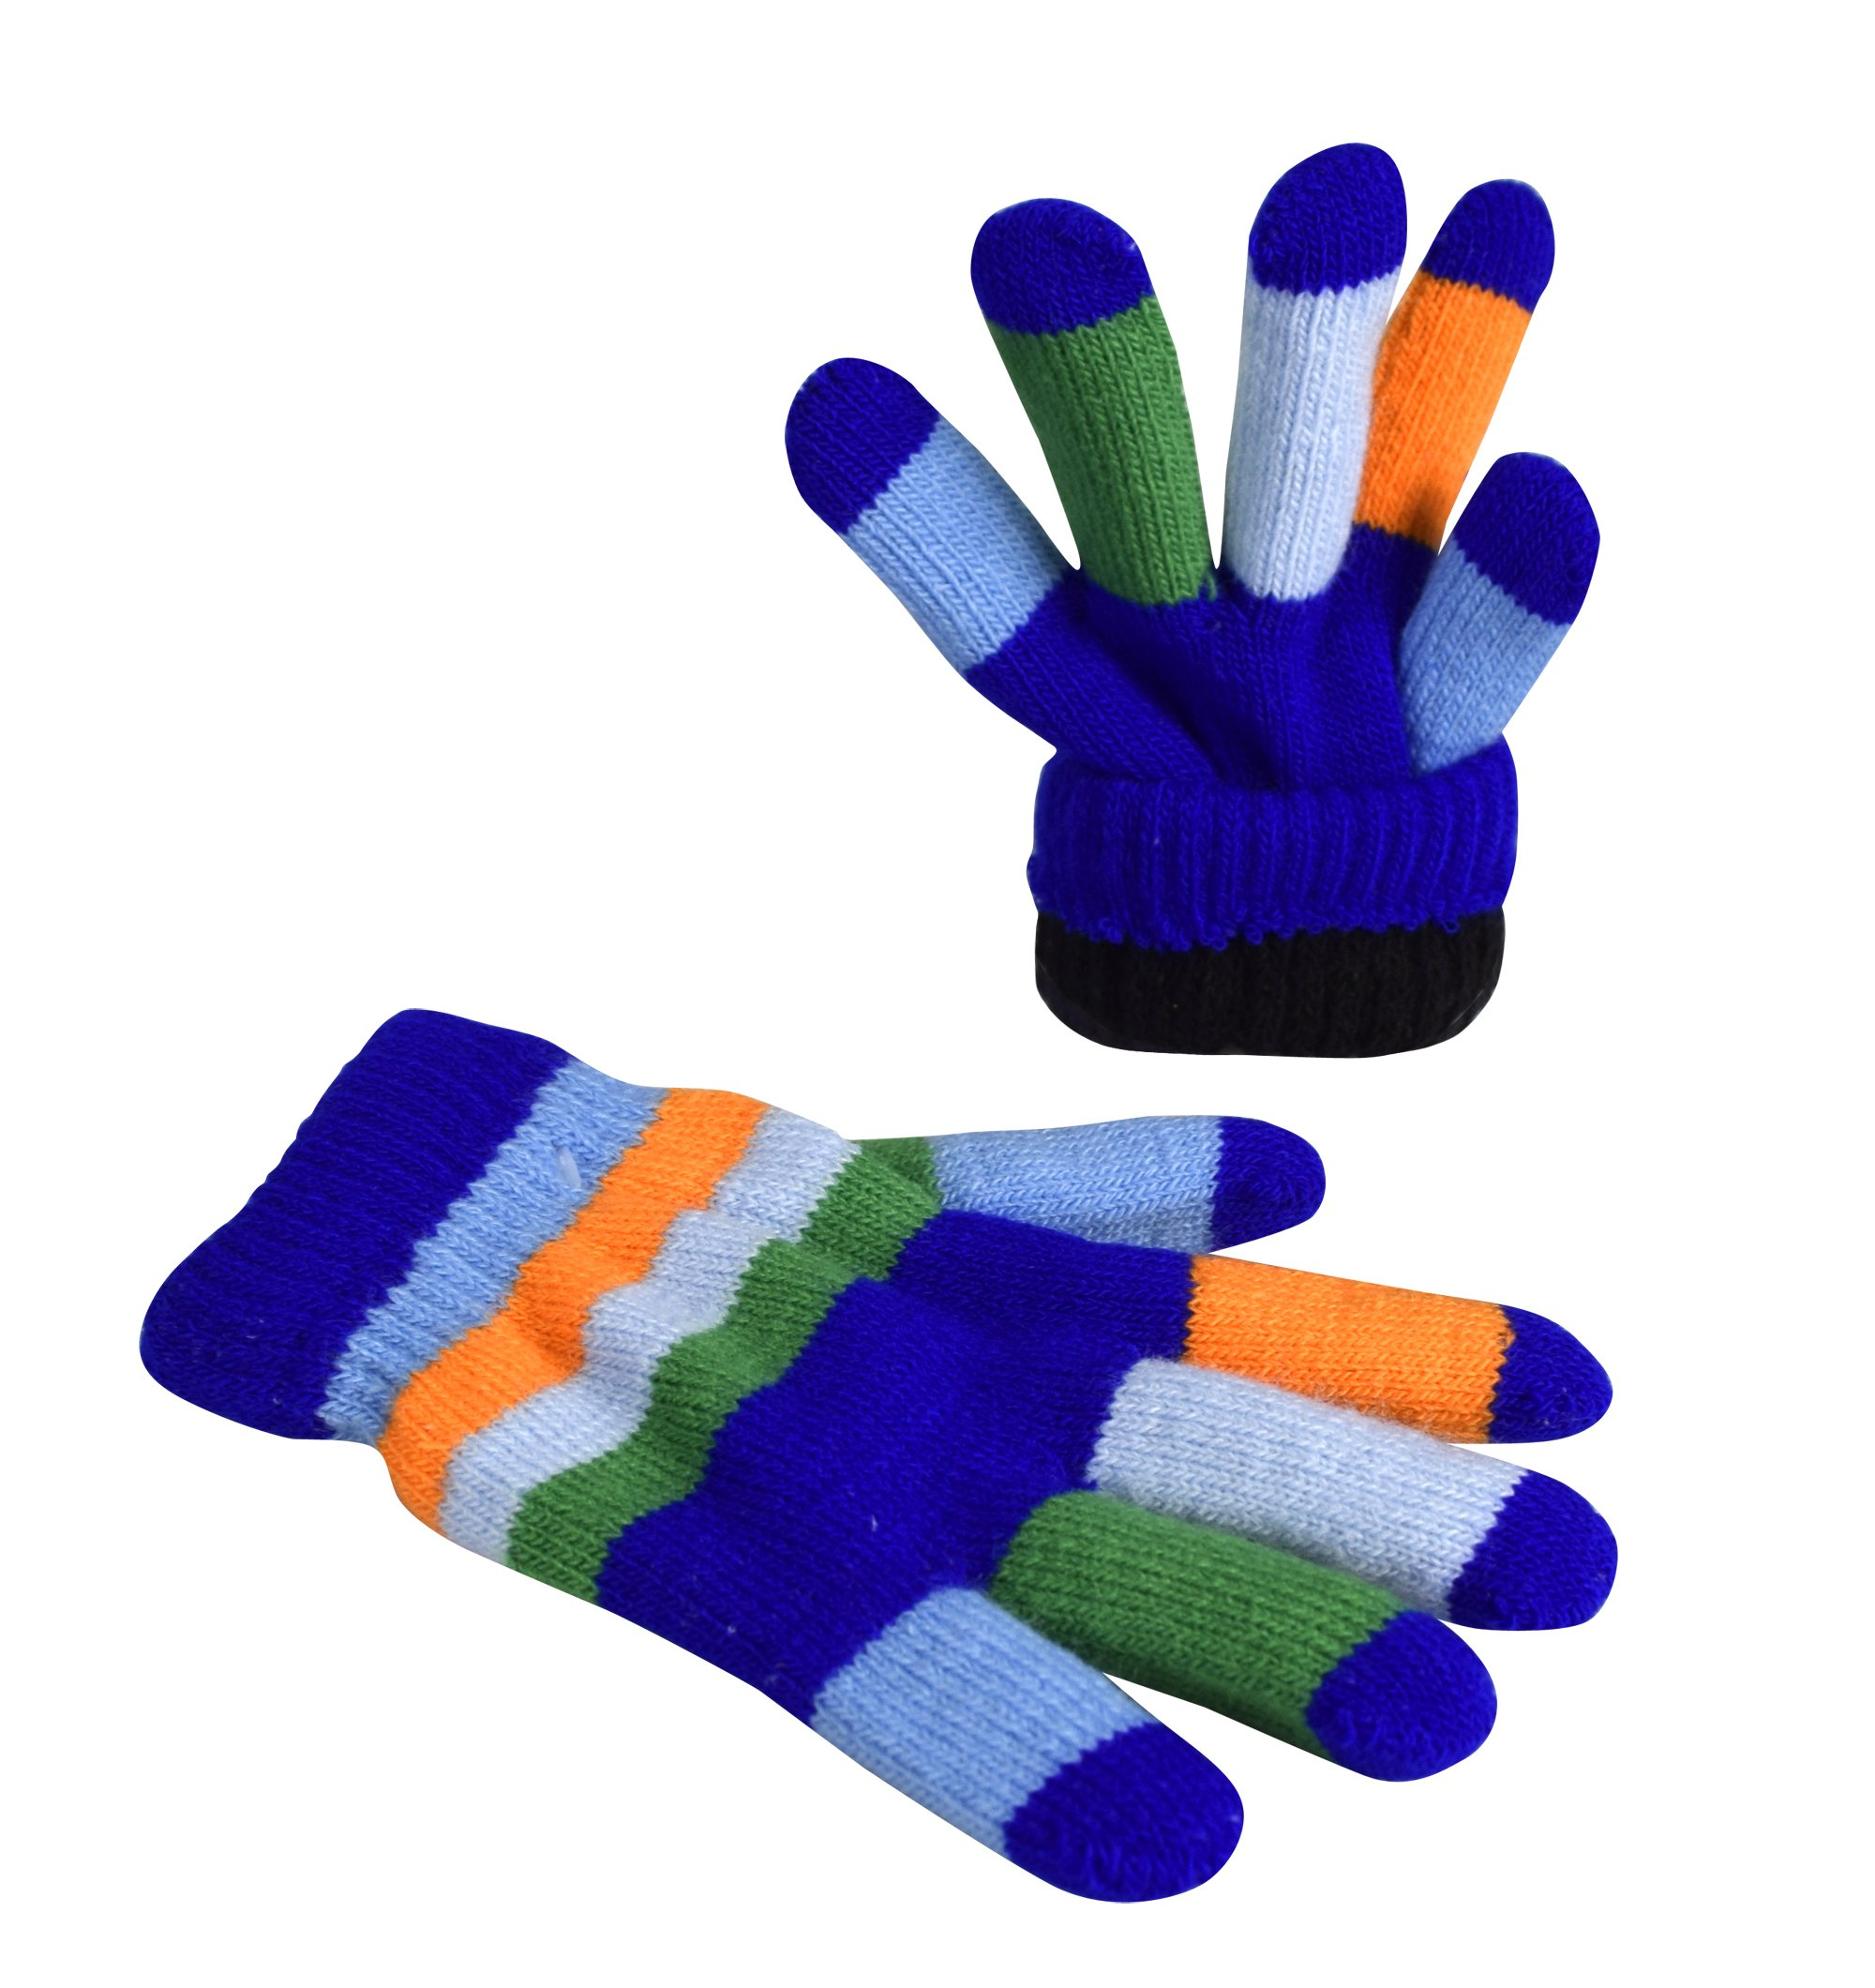 Peach Couture Children/'s Toddler Warm Winter Gloves and Mittens Value packs